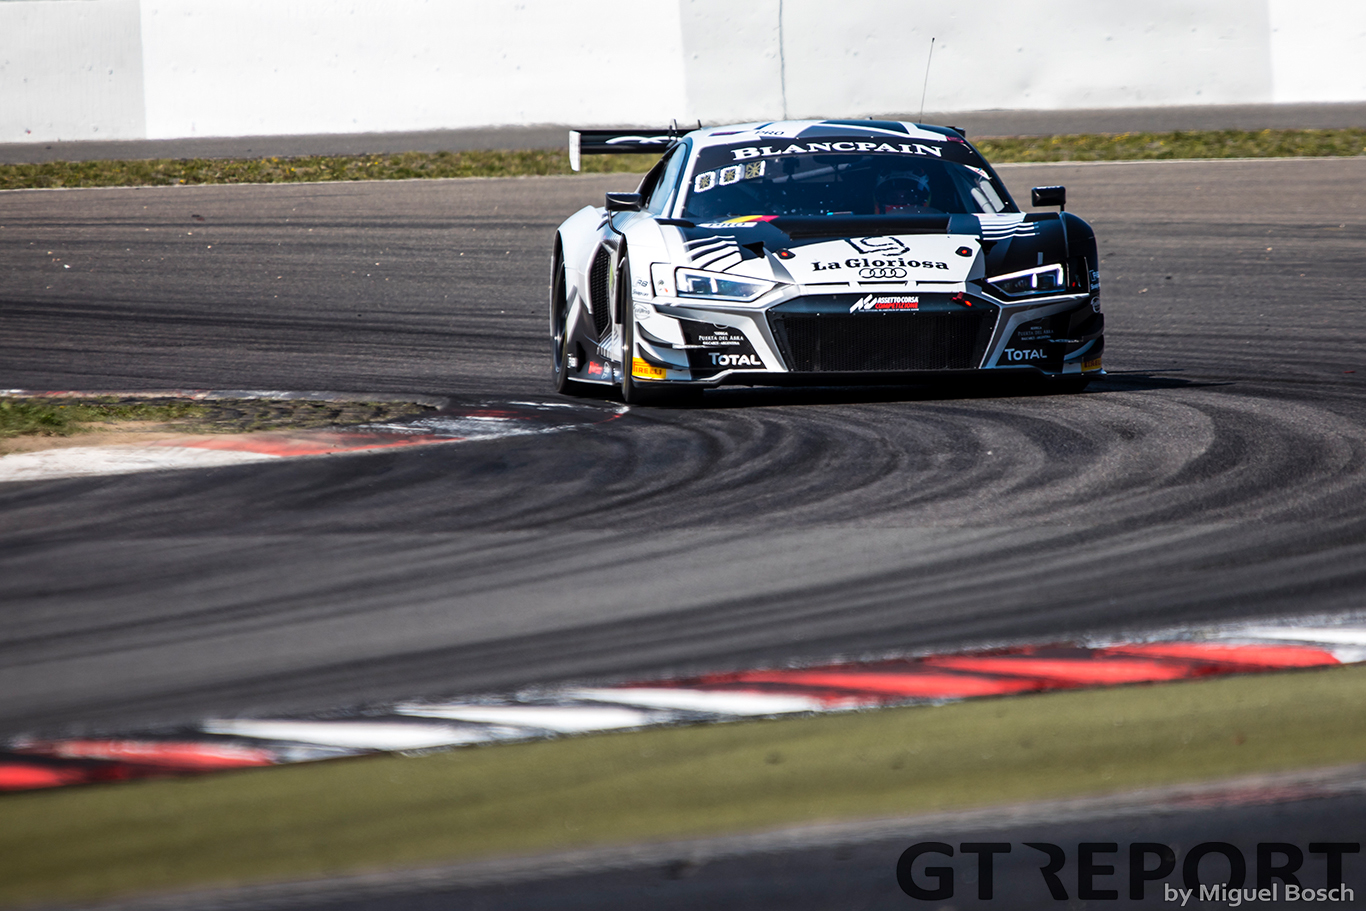 Blancpain GT Nürburgring: Audis lead the way in Friday practice